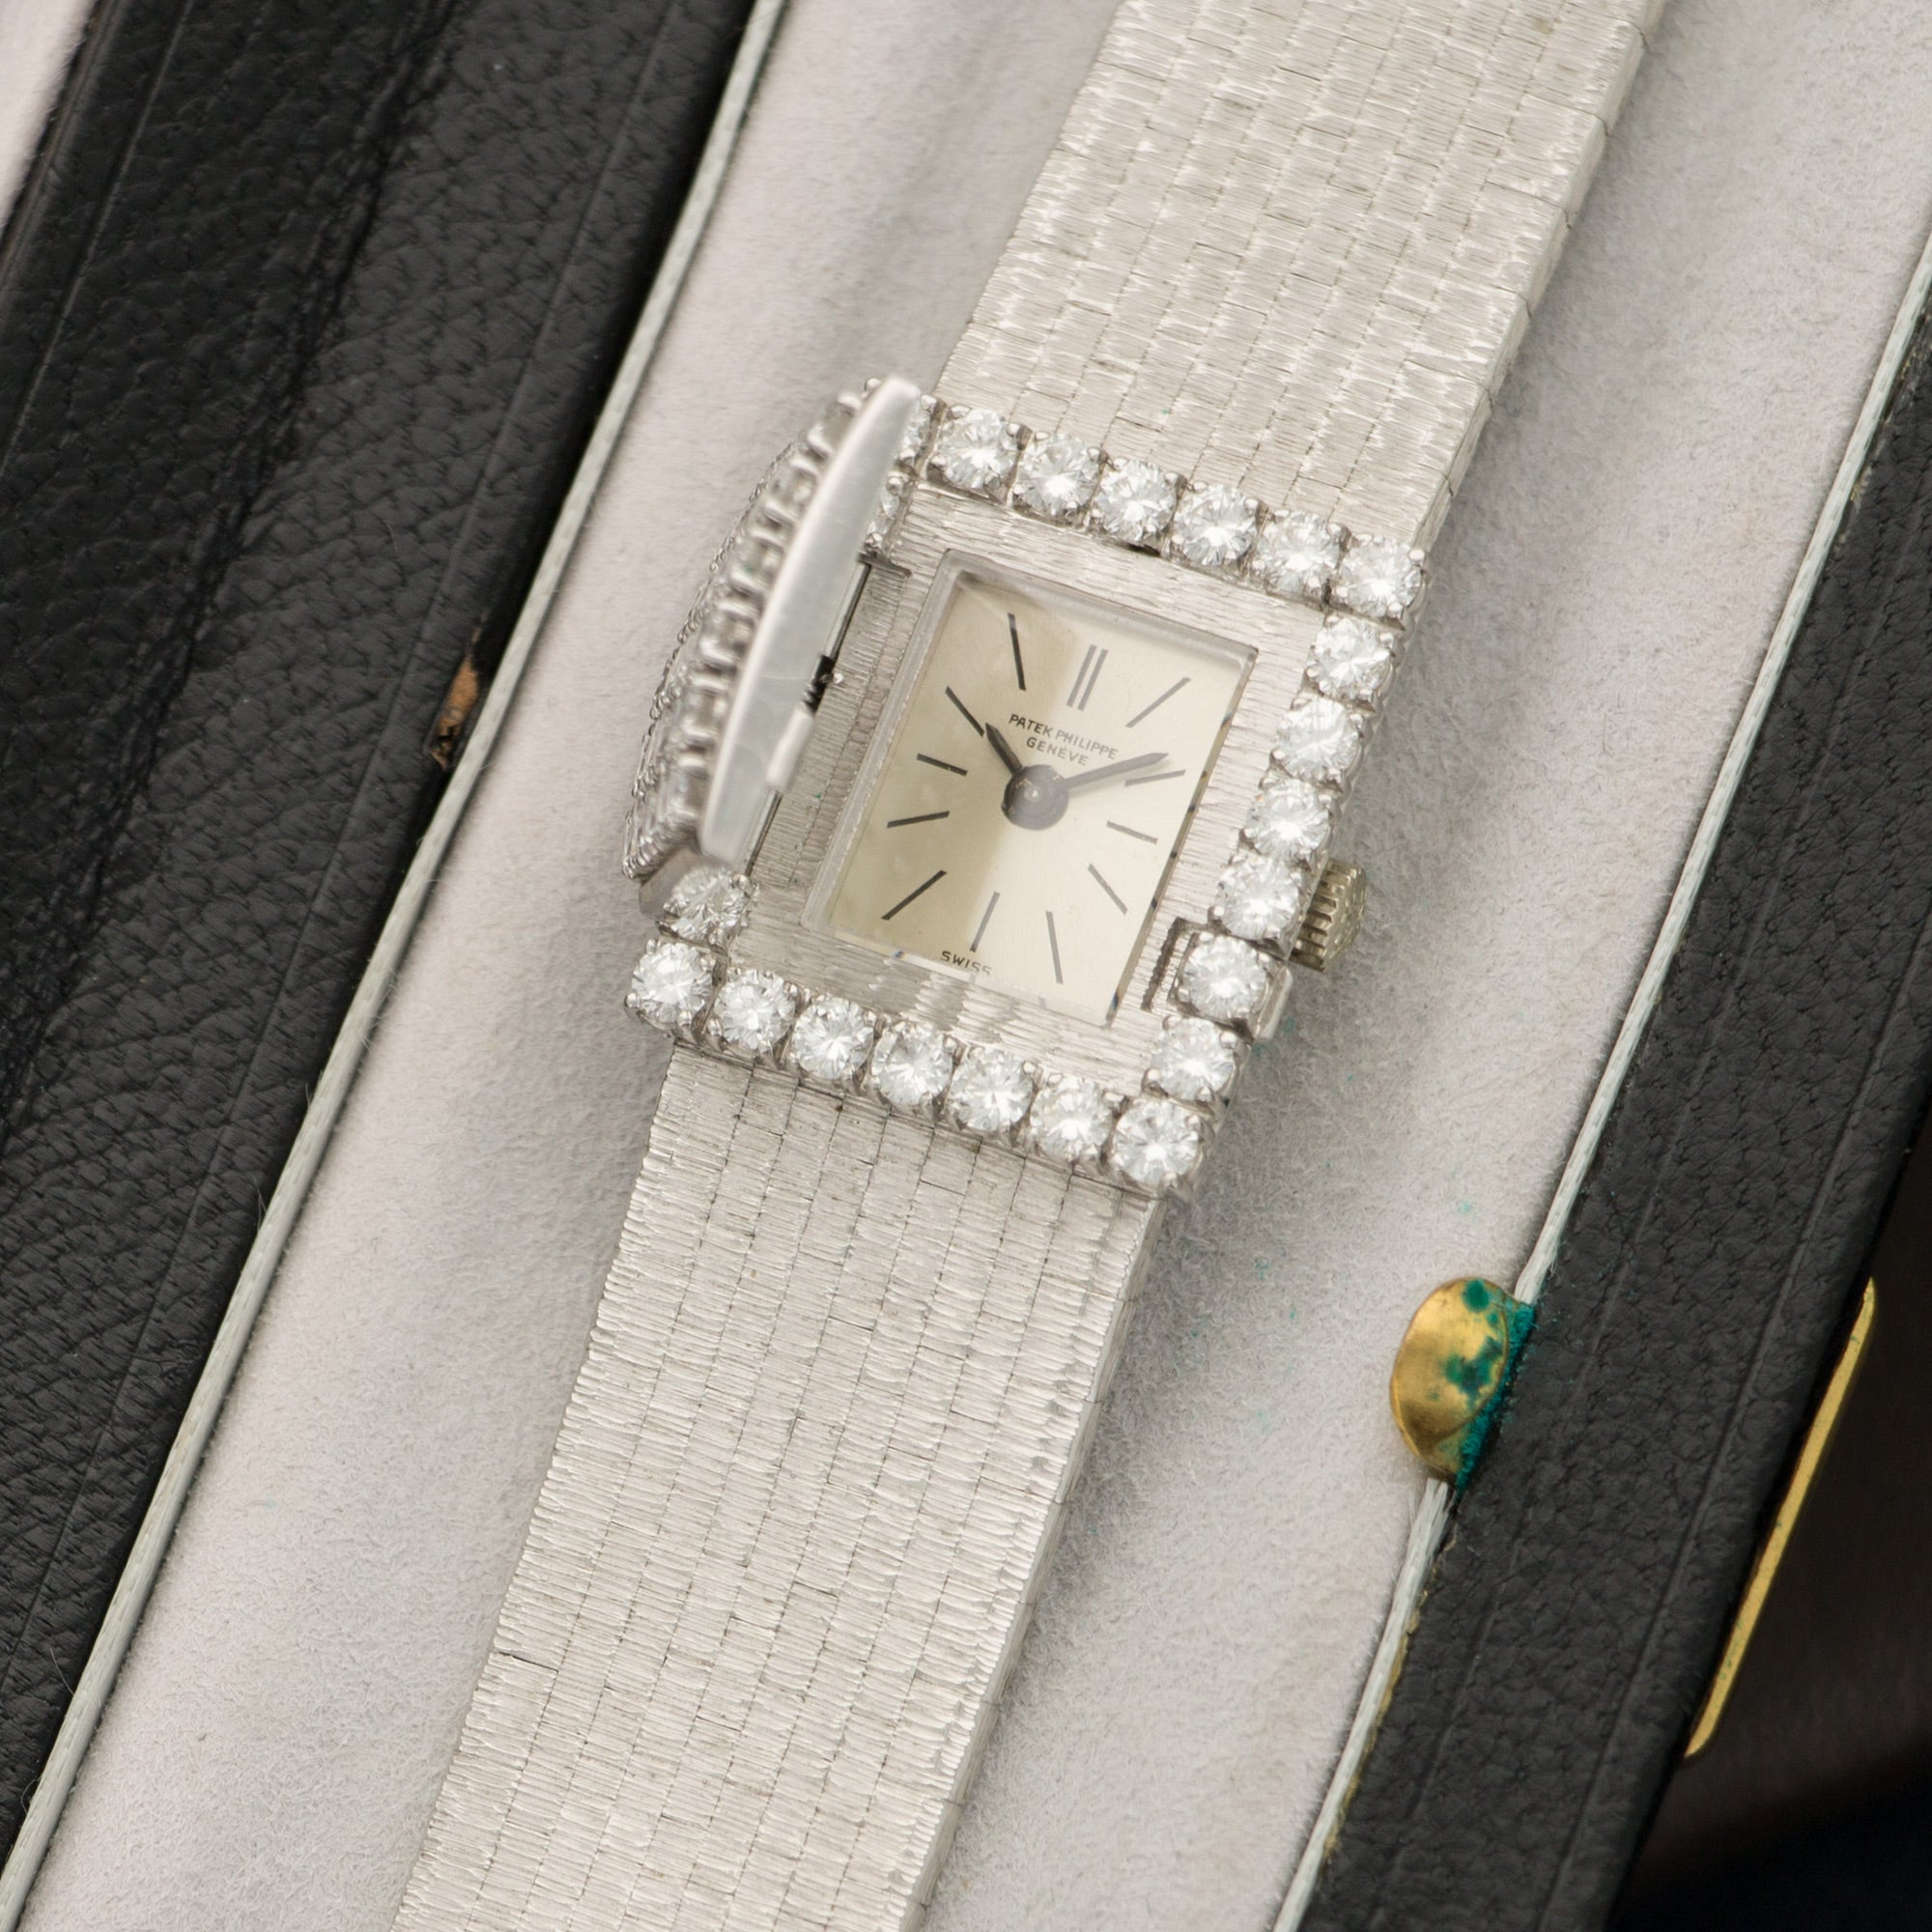 Patek Philippe Vintage 3319 18k WG  Likely Never Polished, Original Finish Ladies 18k WG Silver with Applied Indexes 19mm X 21.5mm Manual 1960s White Gold (170mm) Box